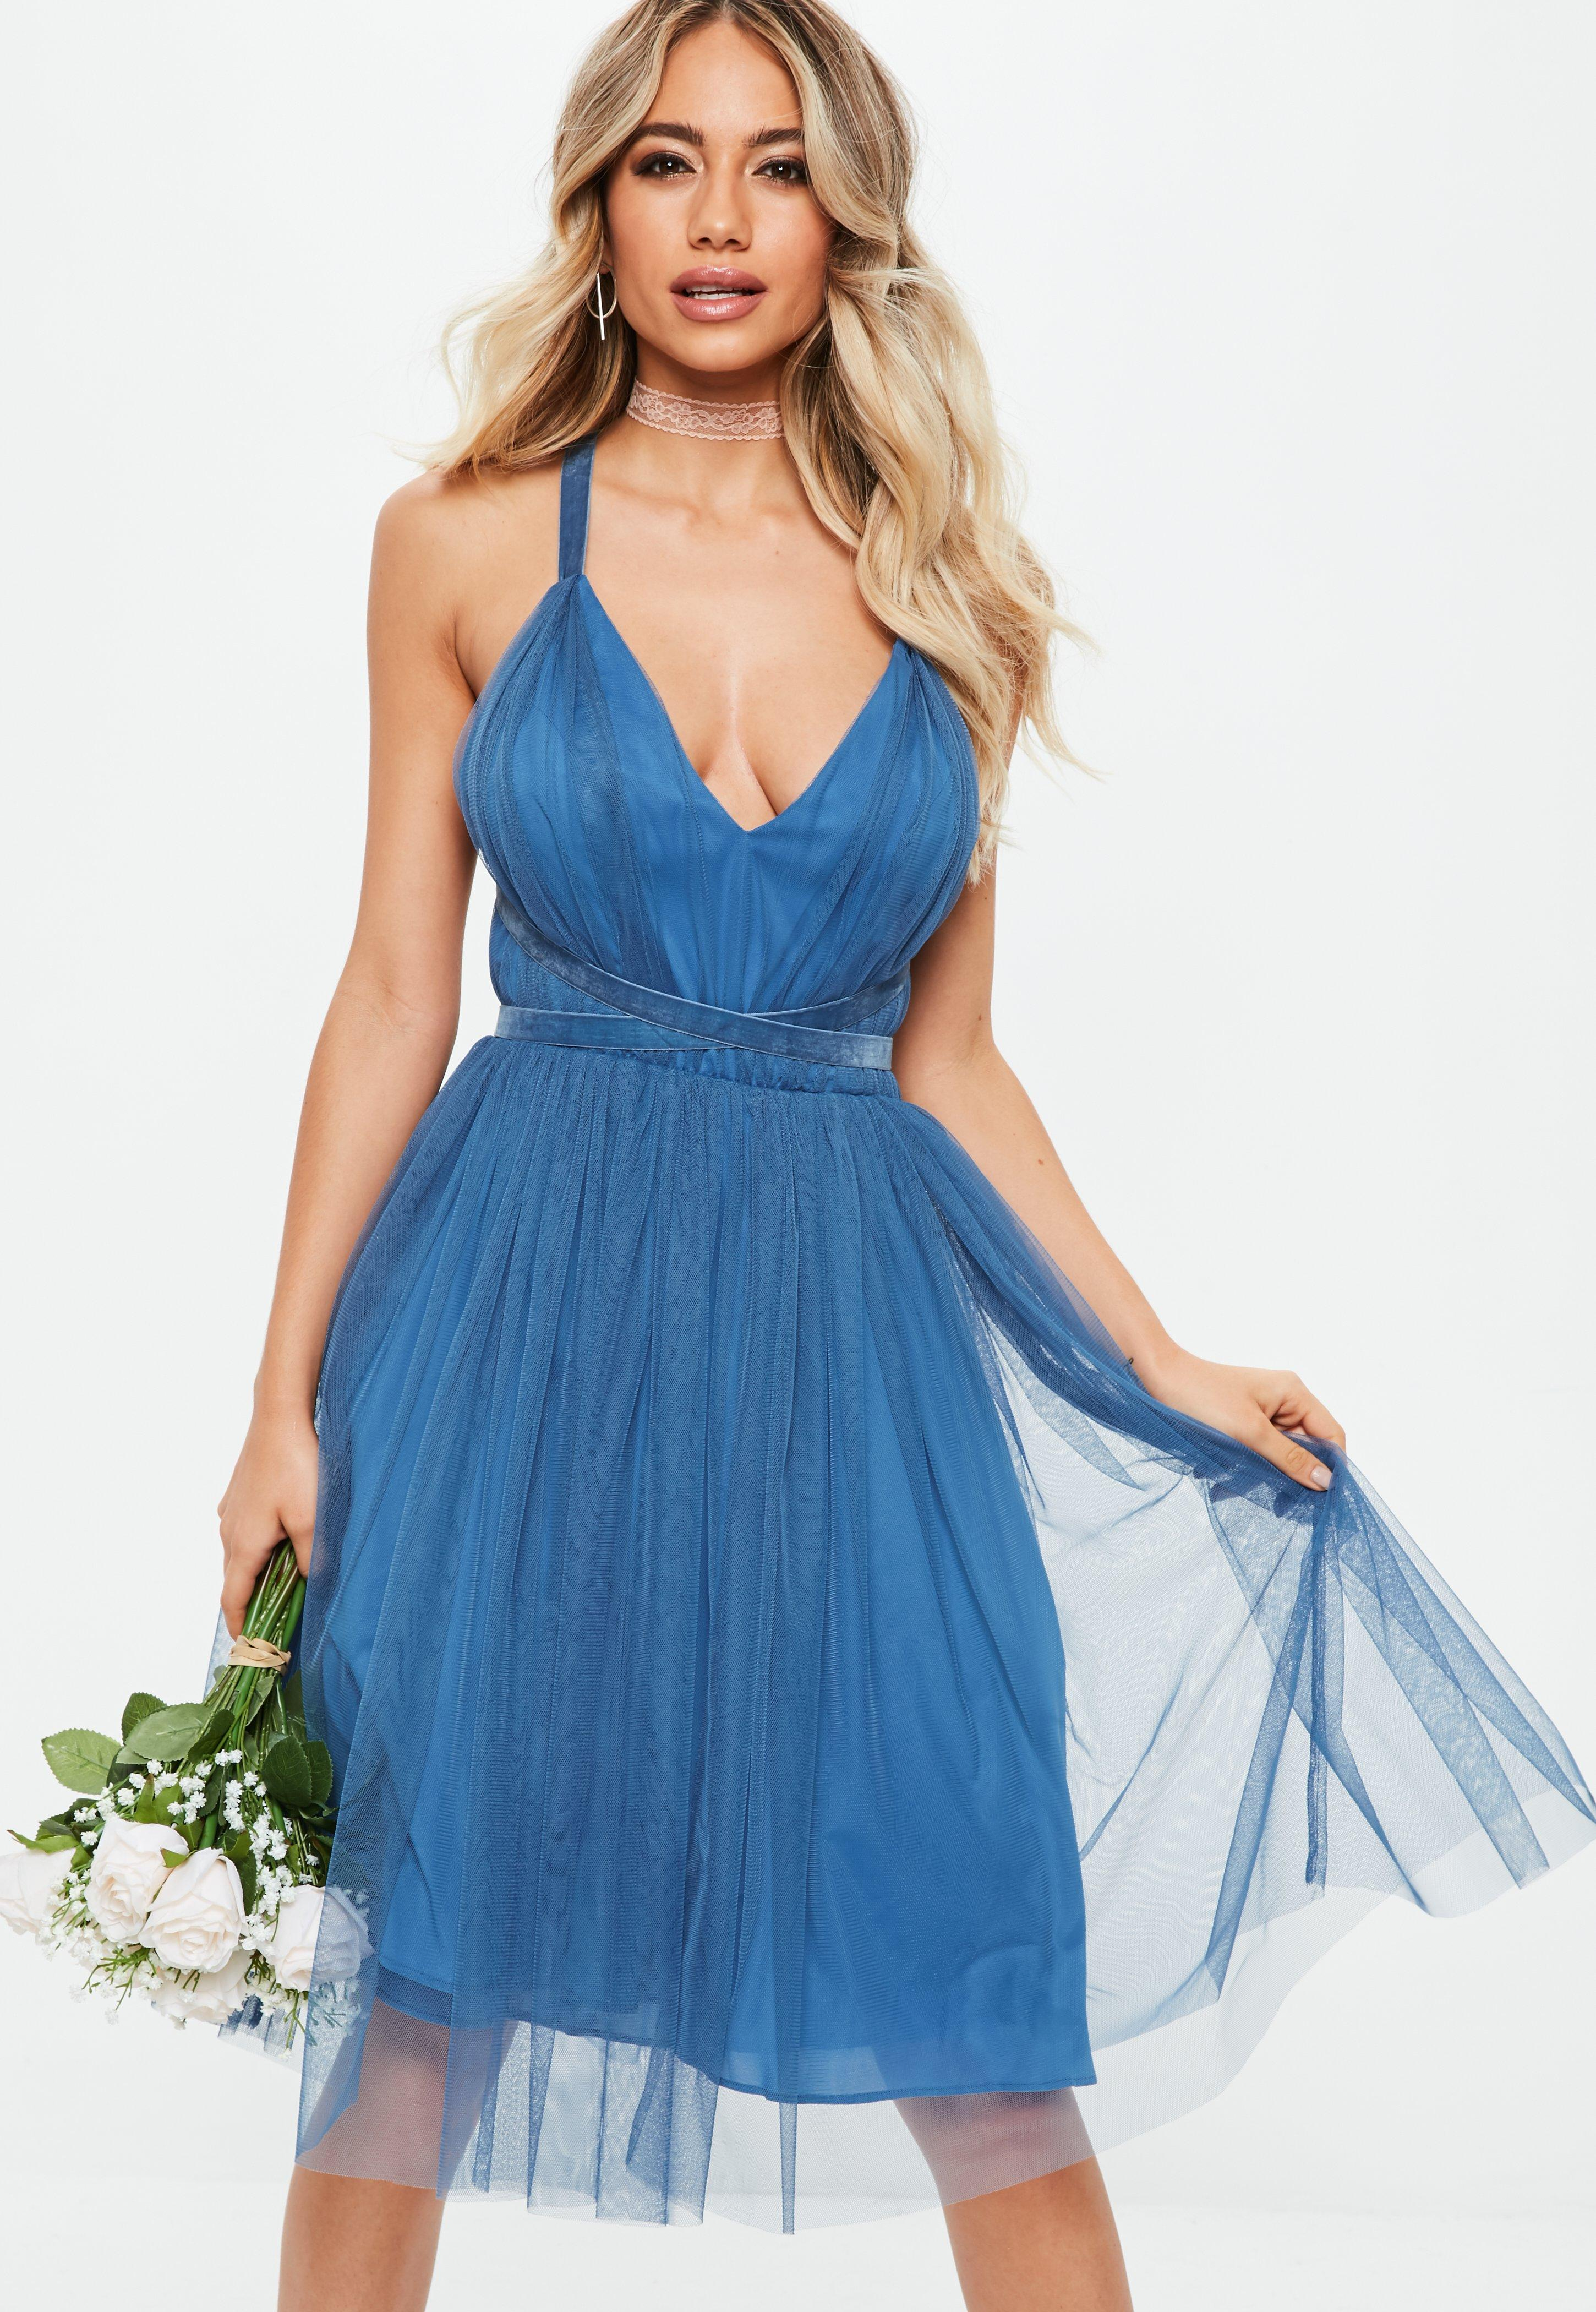 Lyst - Missguided Bridesmaids Blue Mesh Plunge Mini Skater Dress in Blue